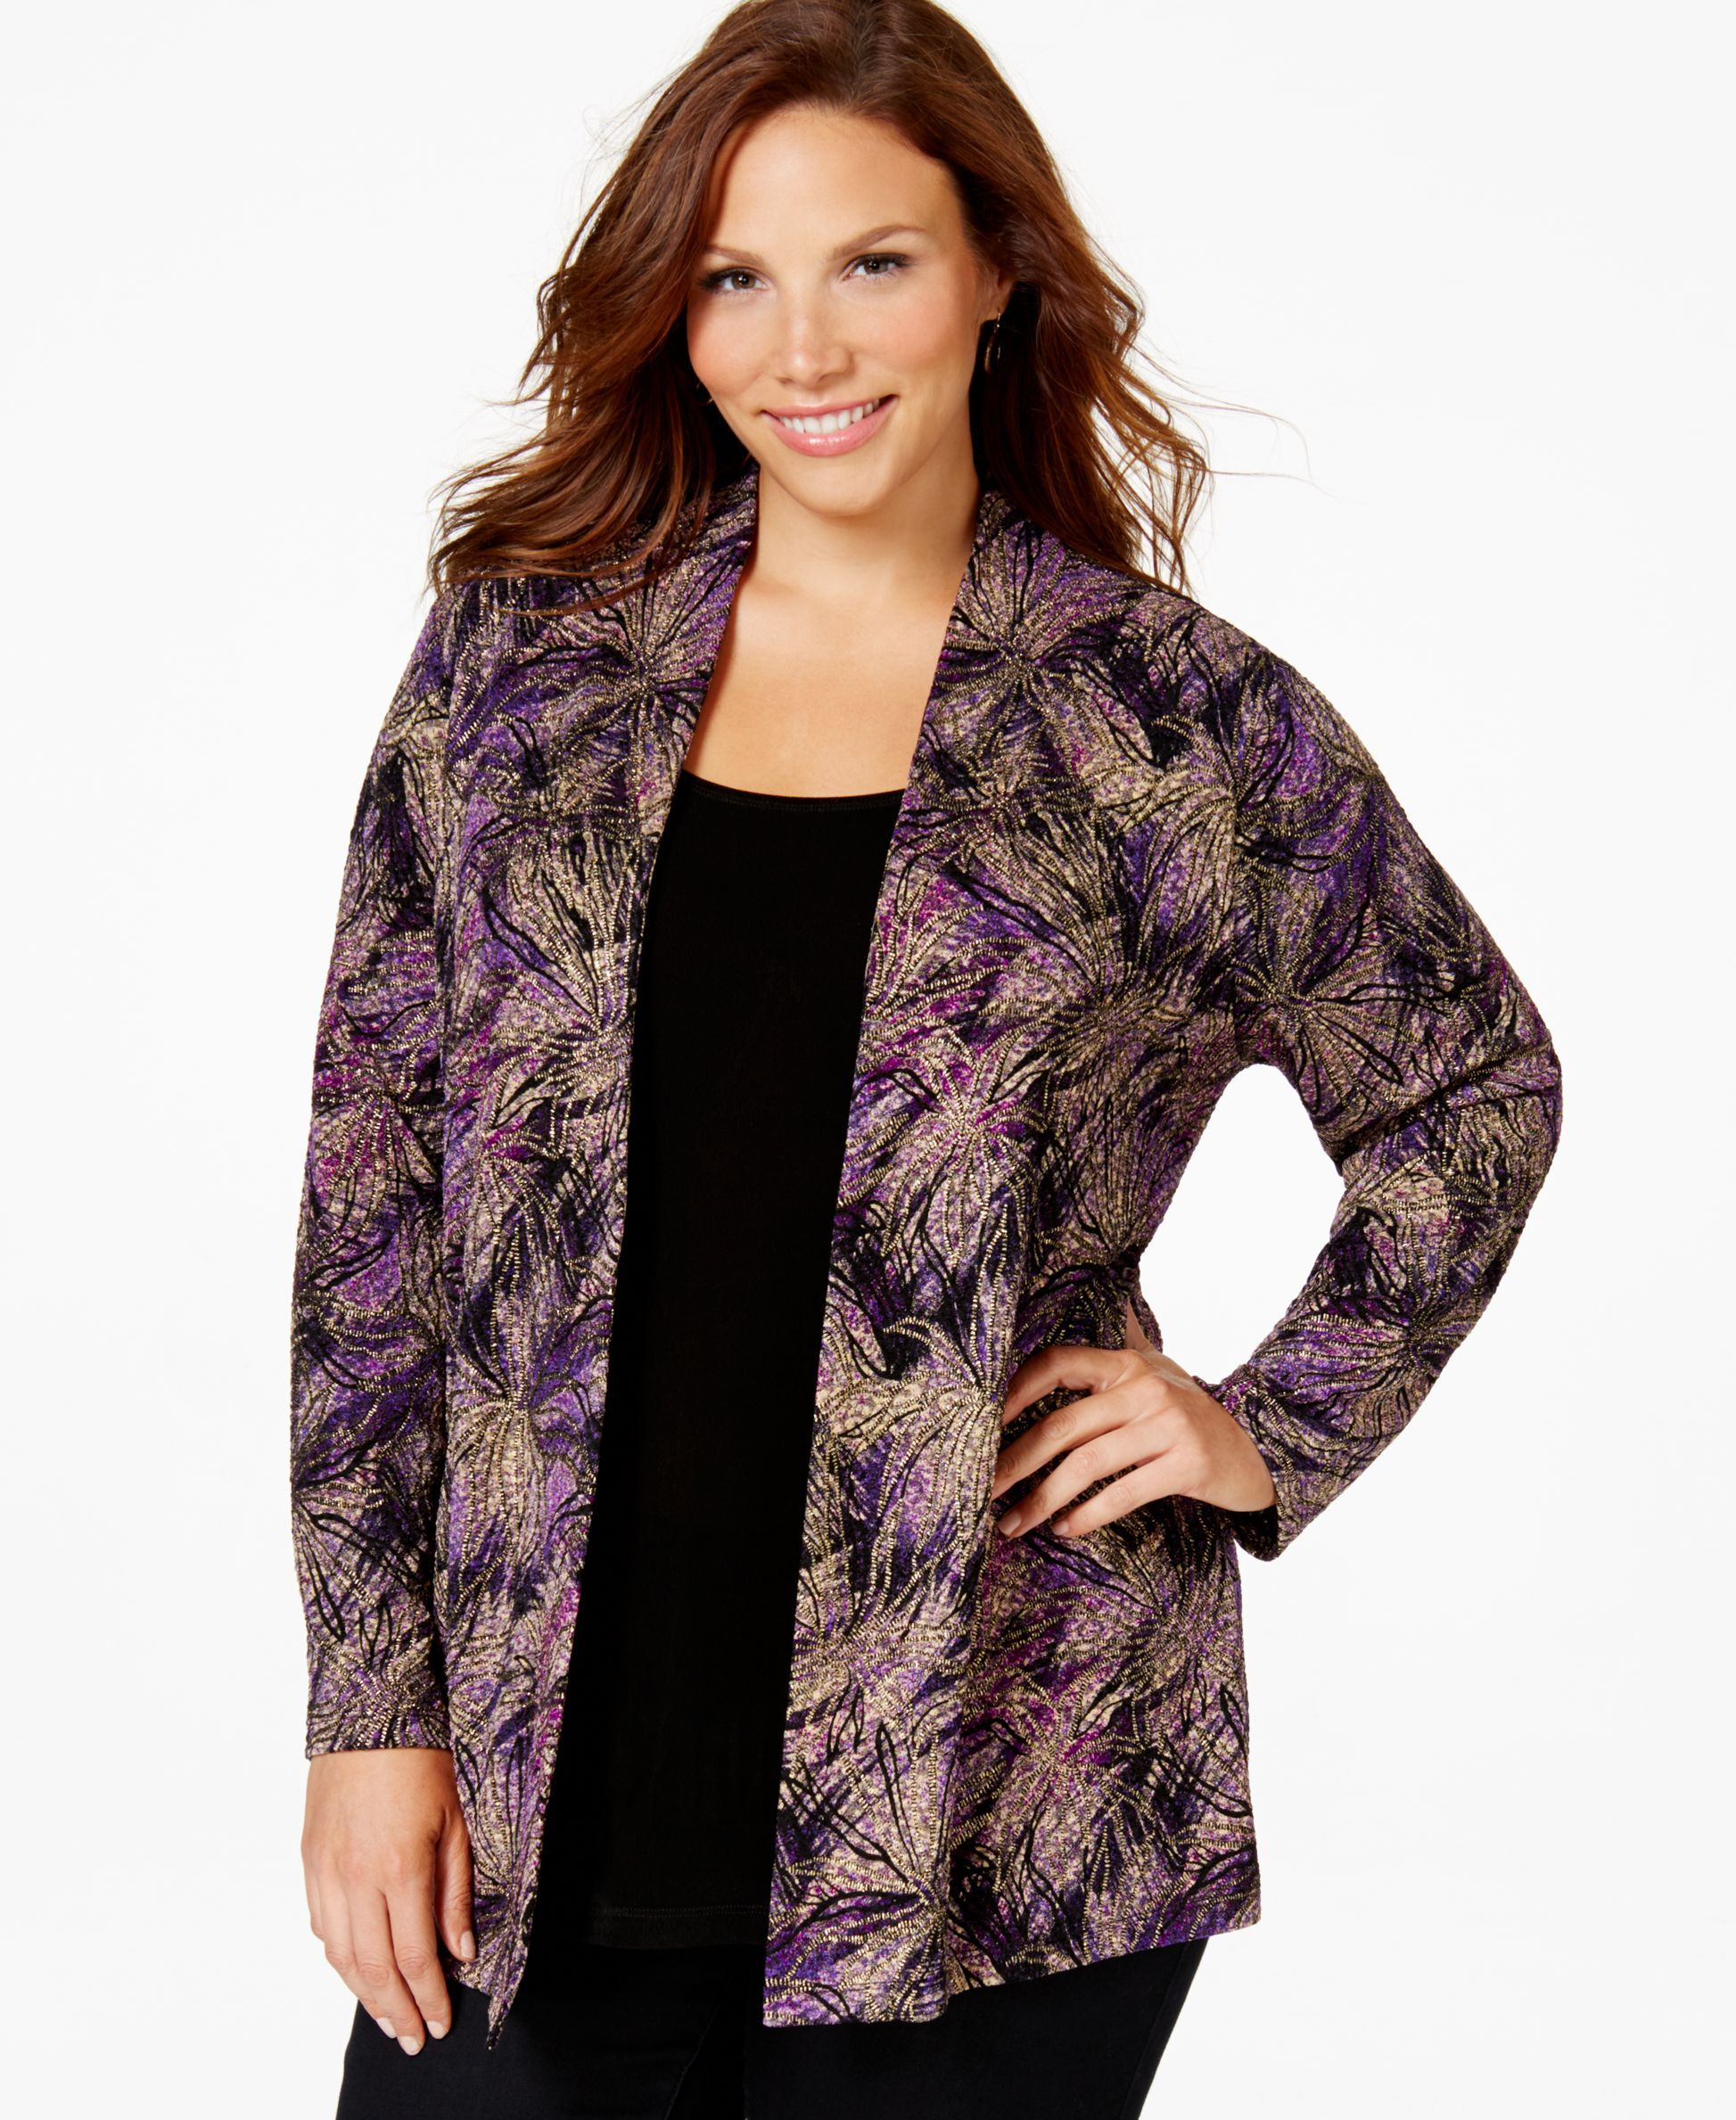 Jm Collection Plus Size Layered-Look Printed Top, Only at Macy's